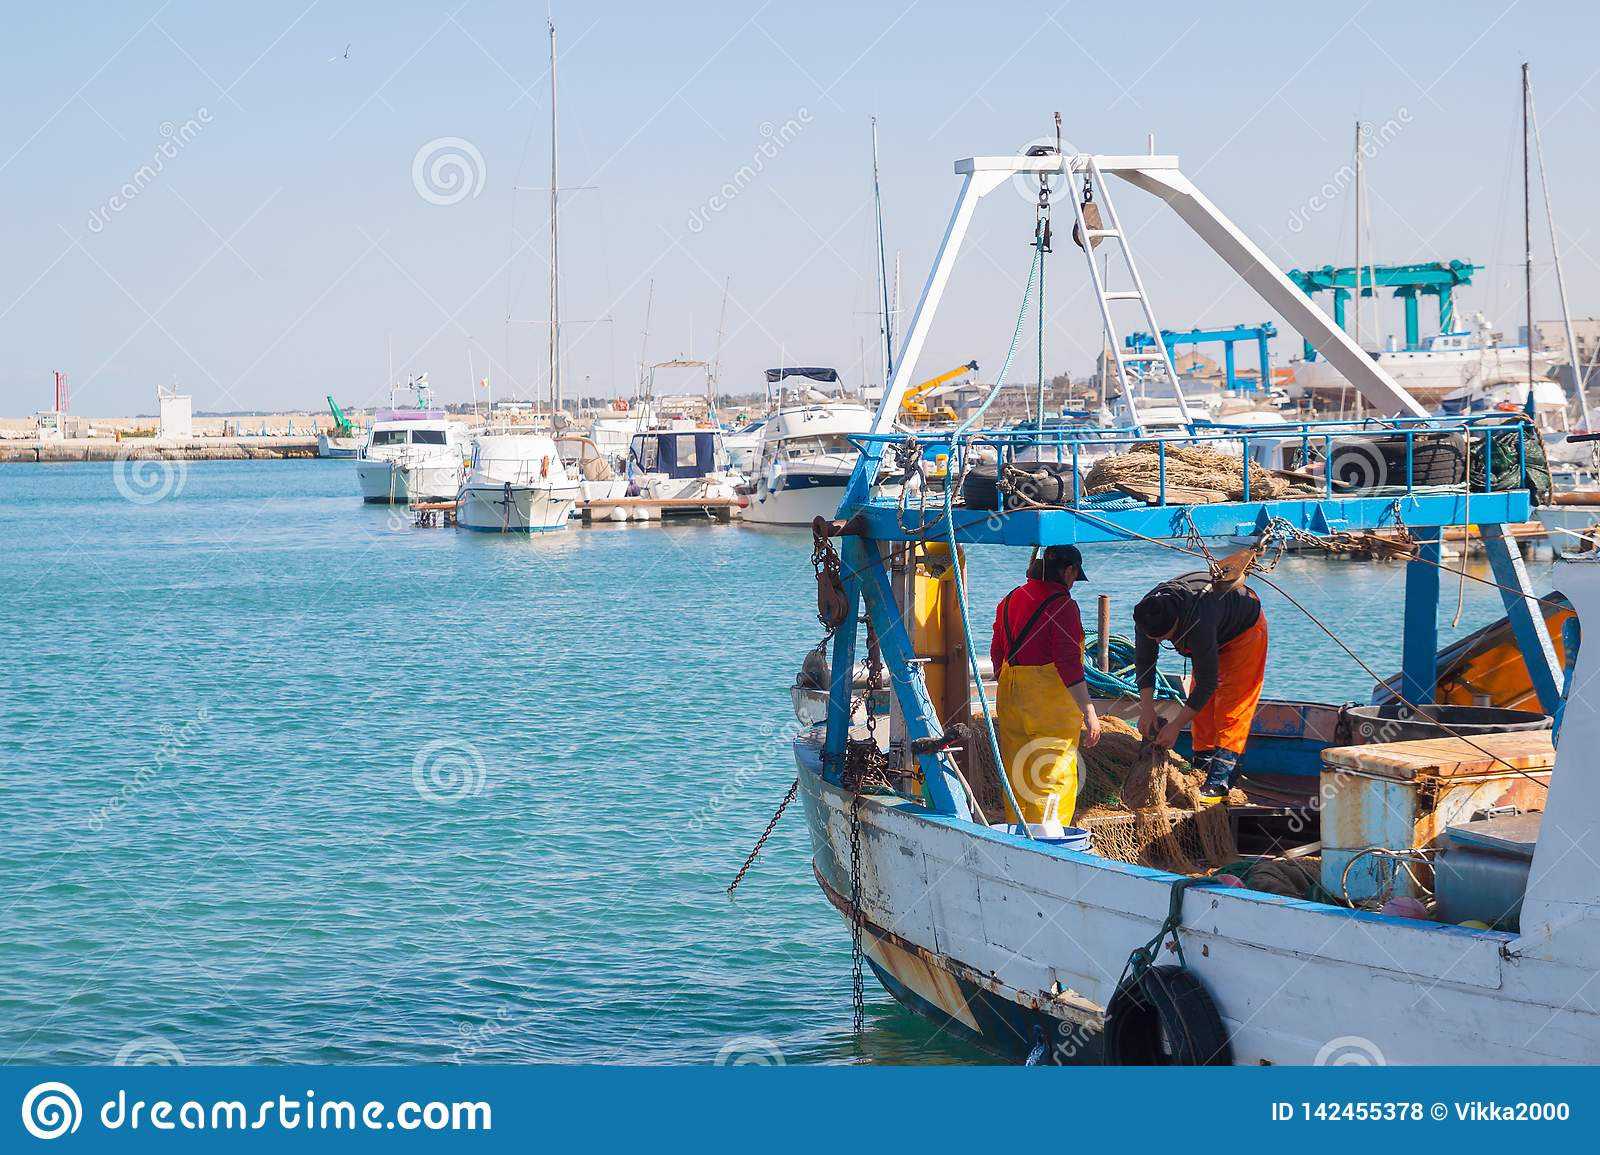 Fishermen on boat with fishing nets